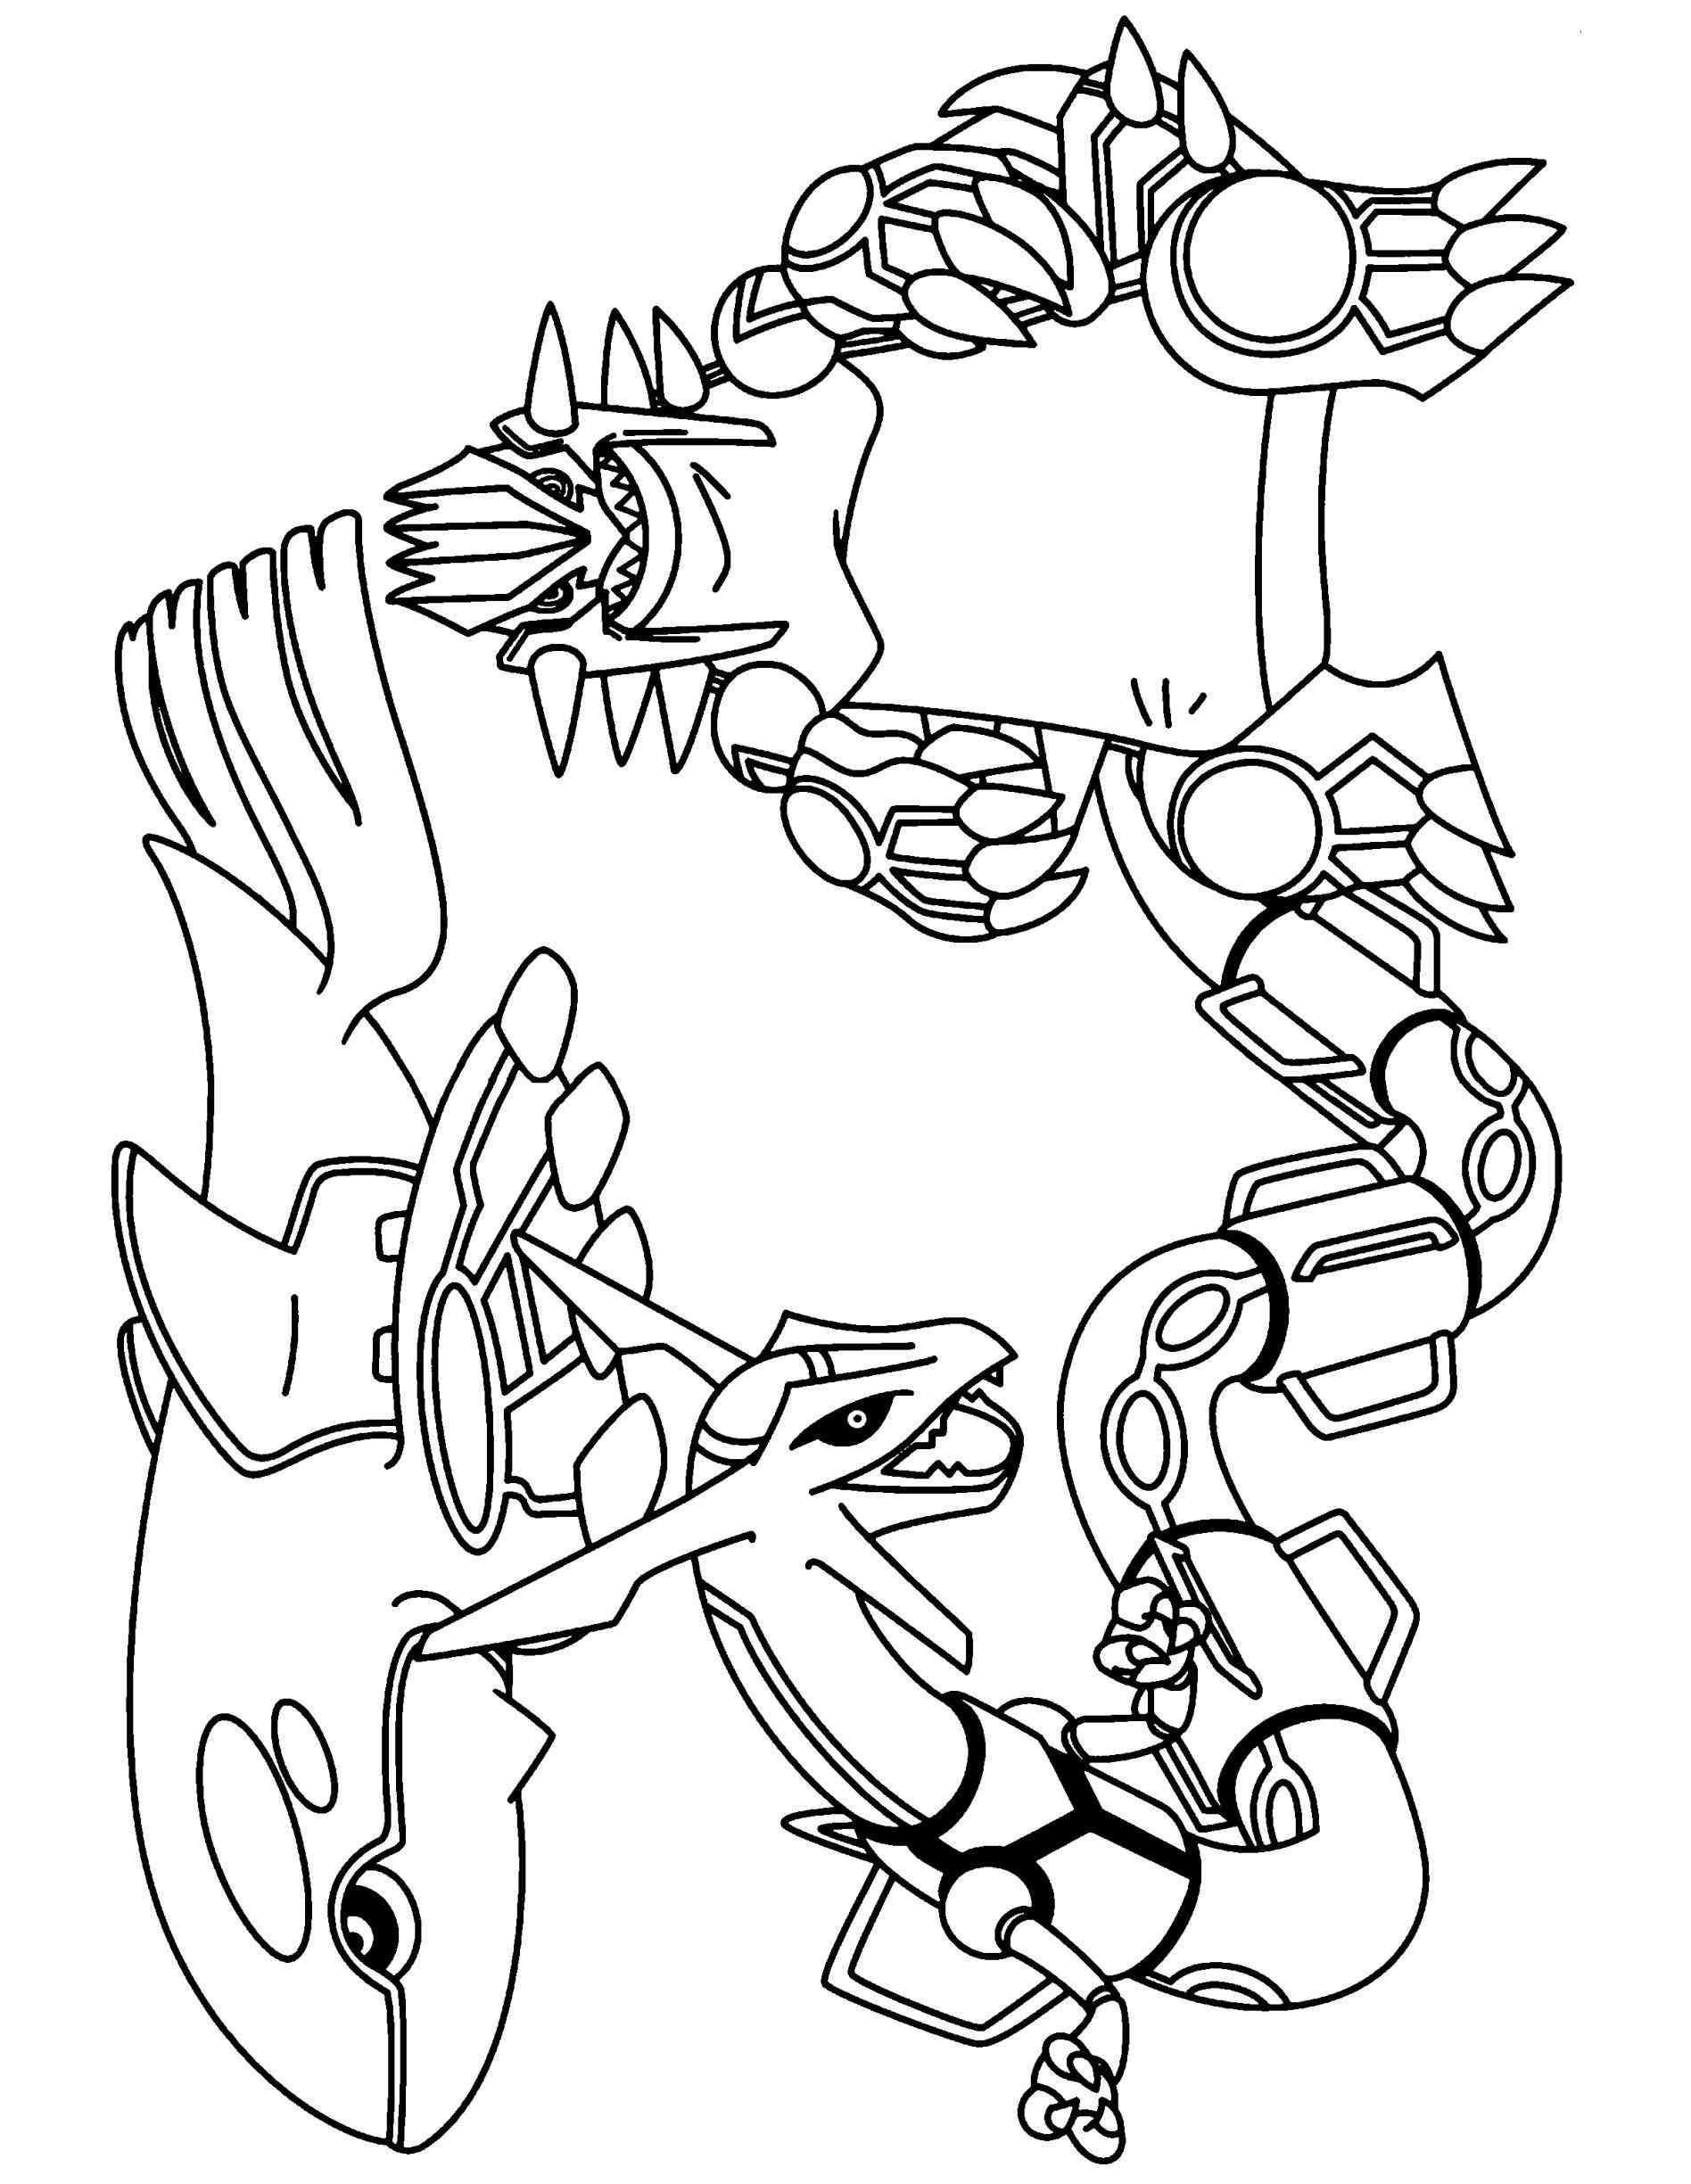 groudon coloring pages - photo#18